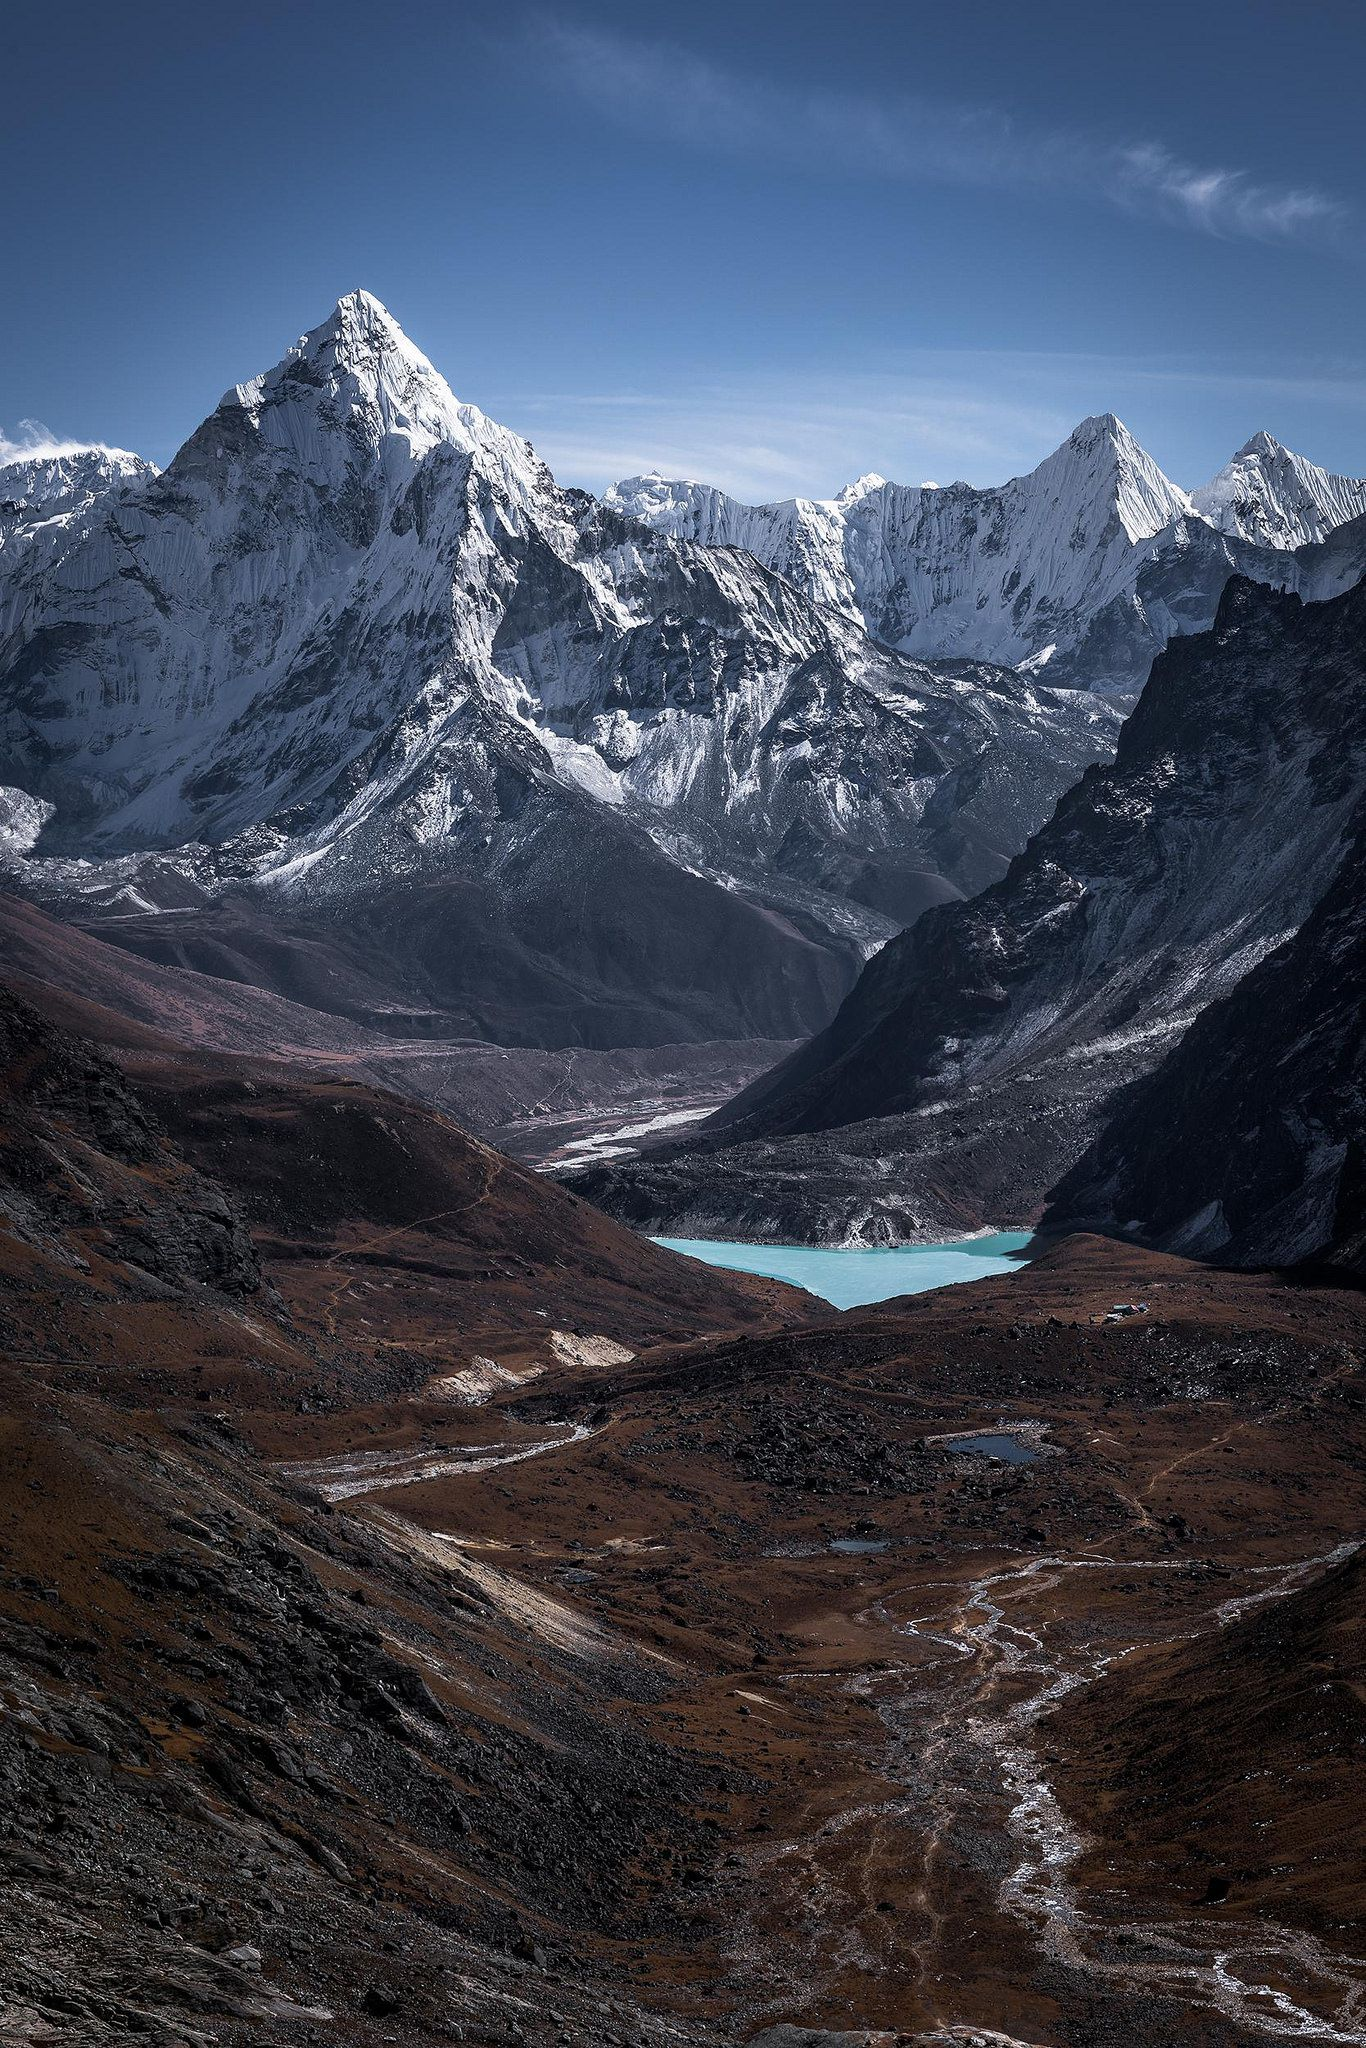 paradise on the Earth its mount Everest